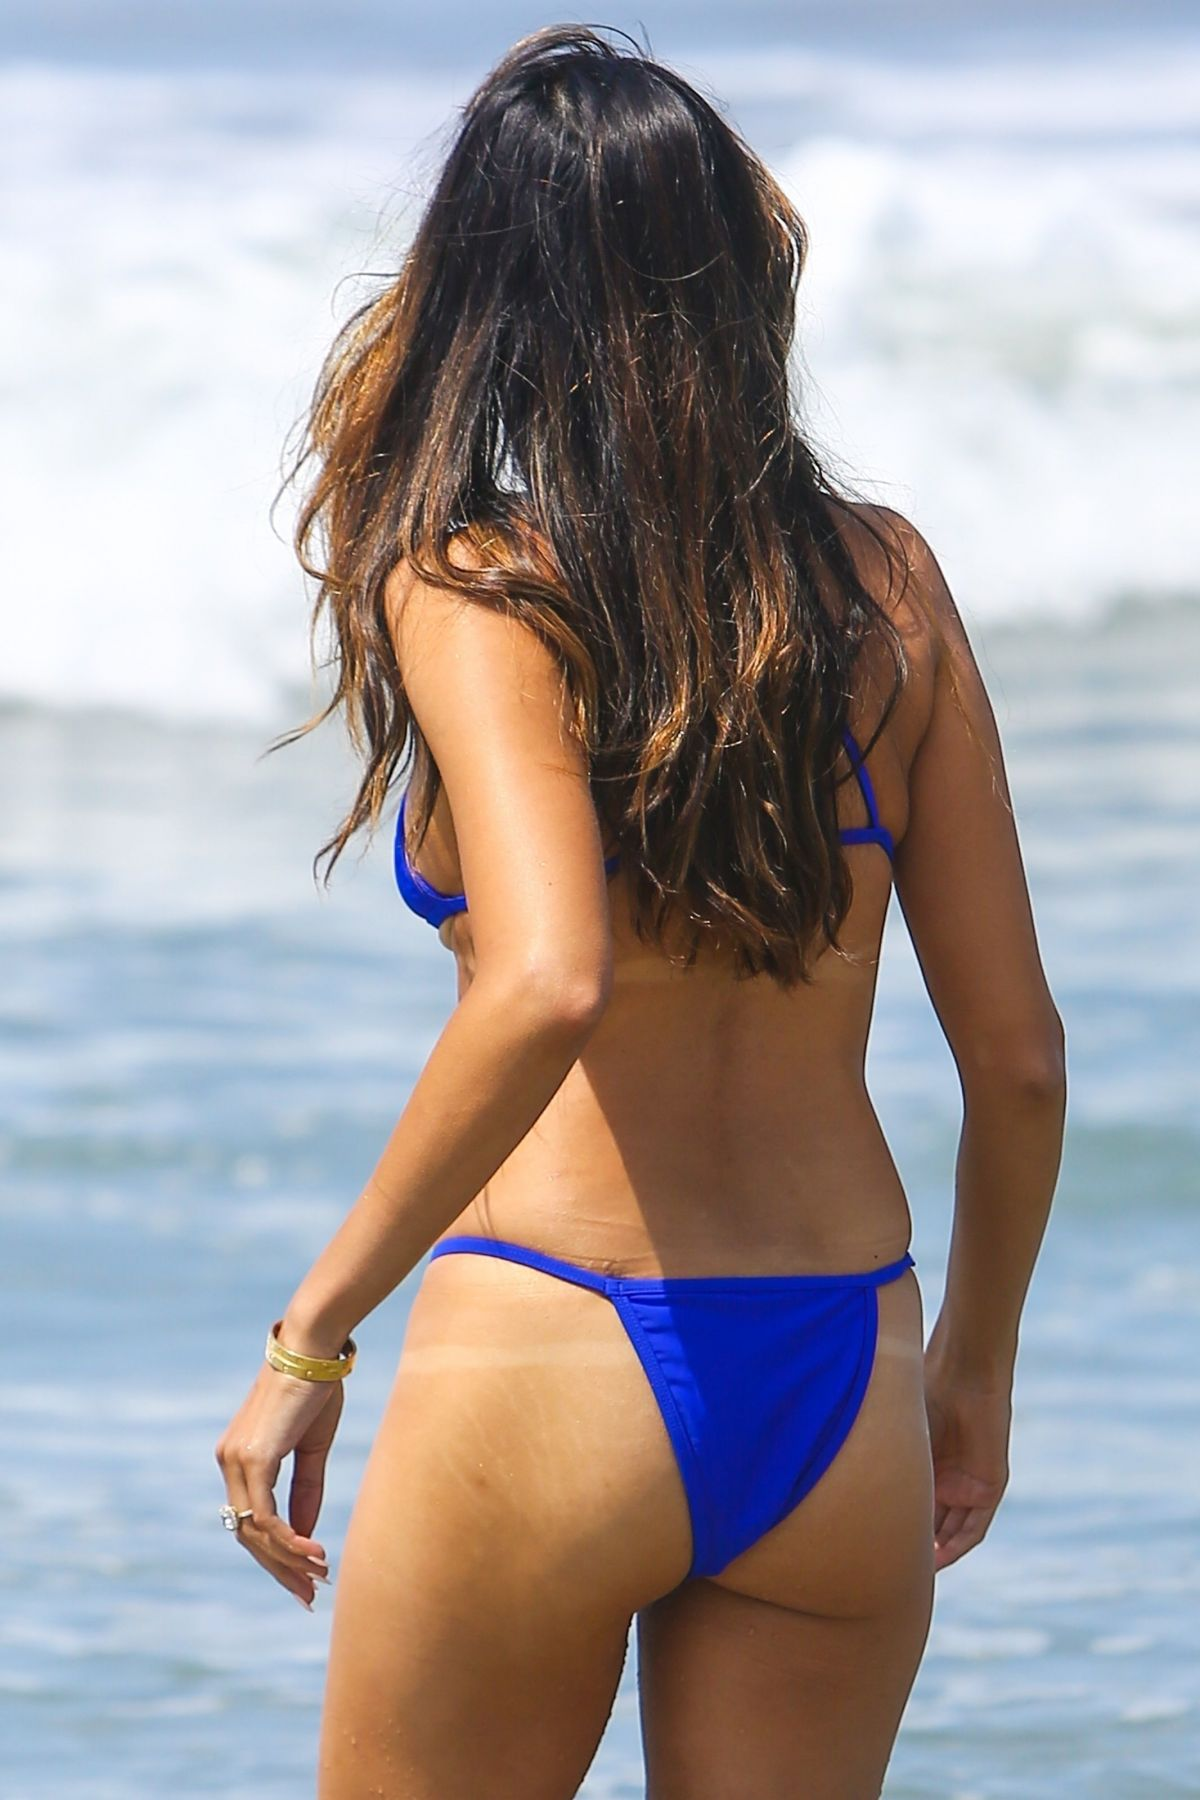 Bikini Noureen DeWulf nude (83 photos), Topless, Hot, Instagram, legs 2017